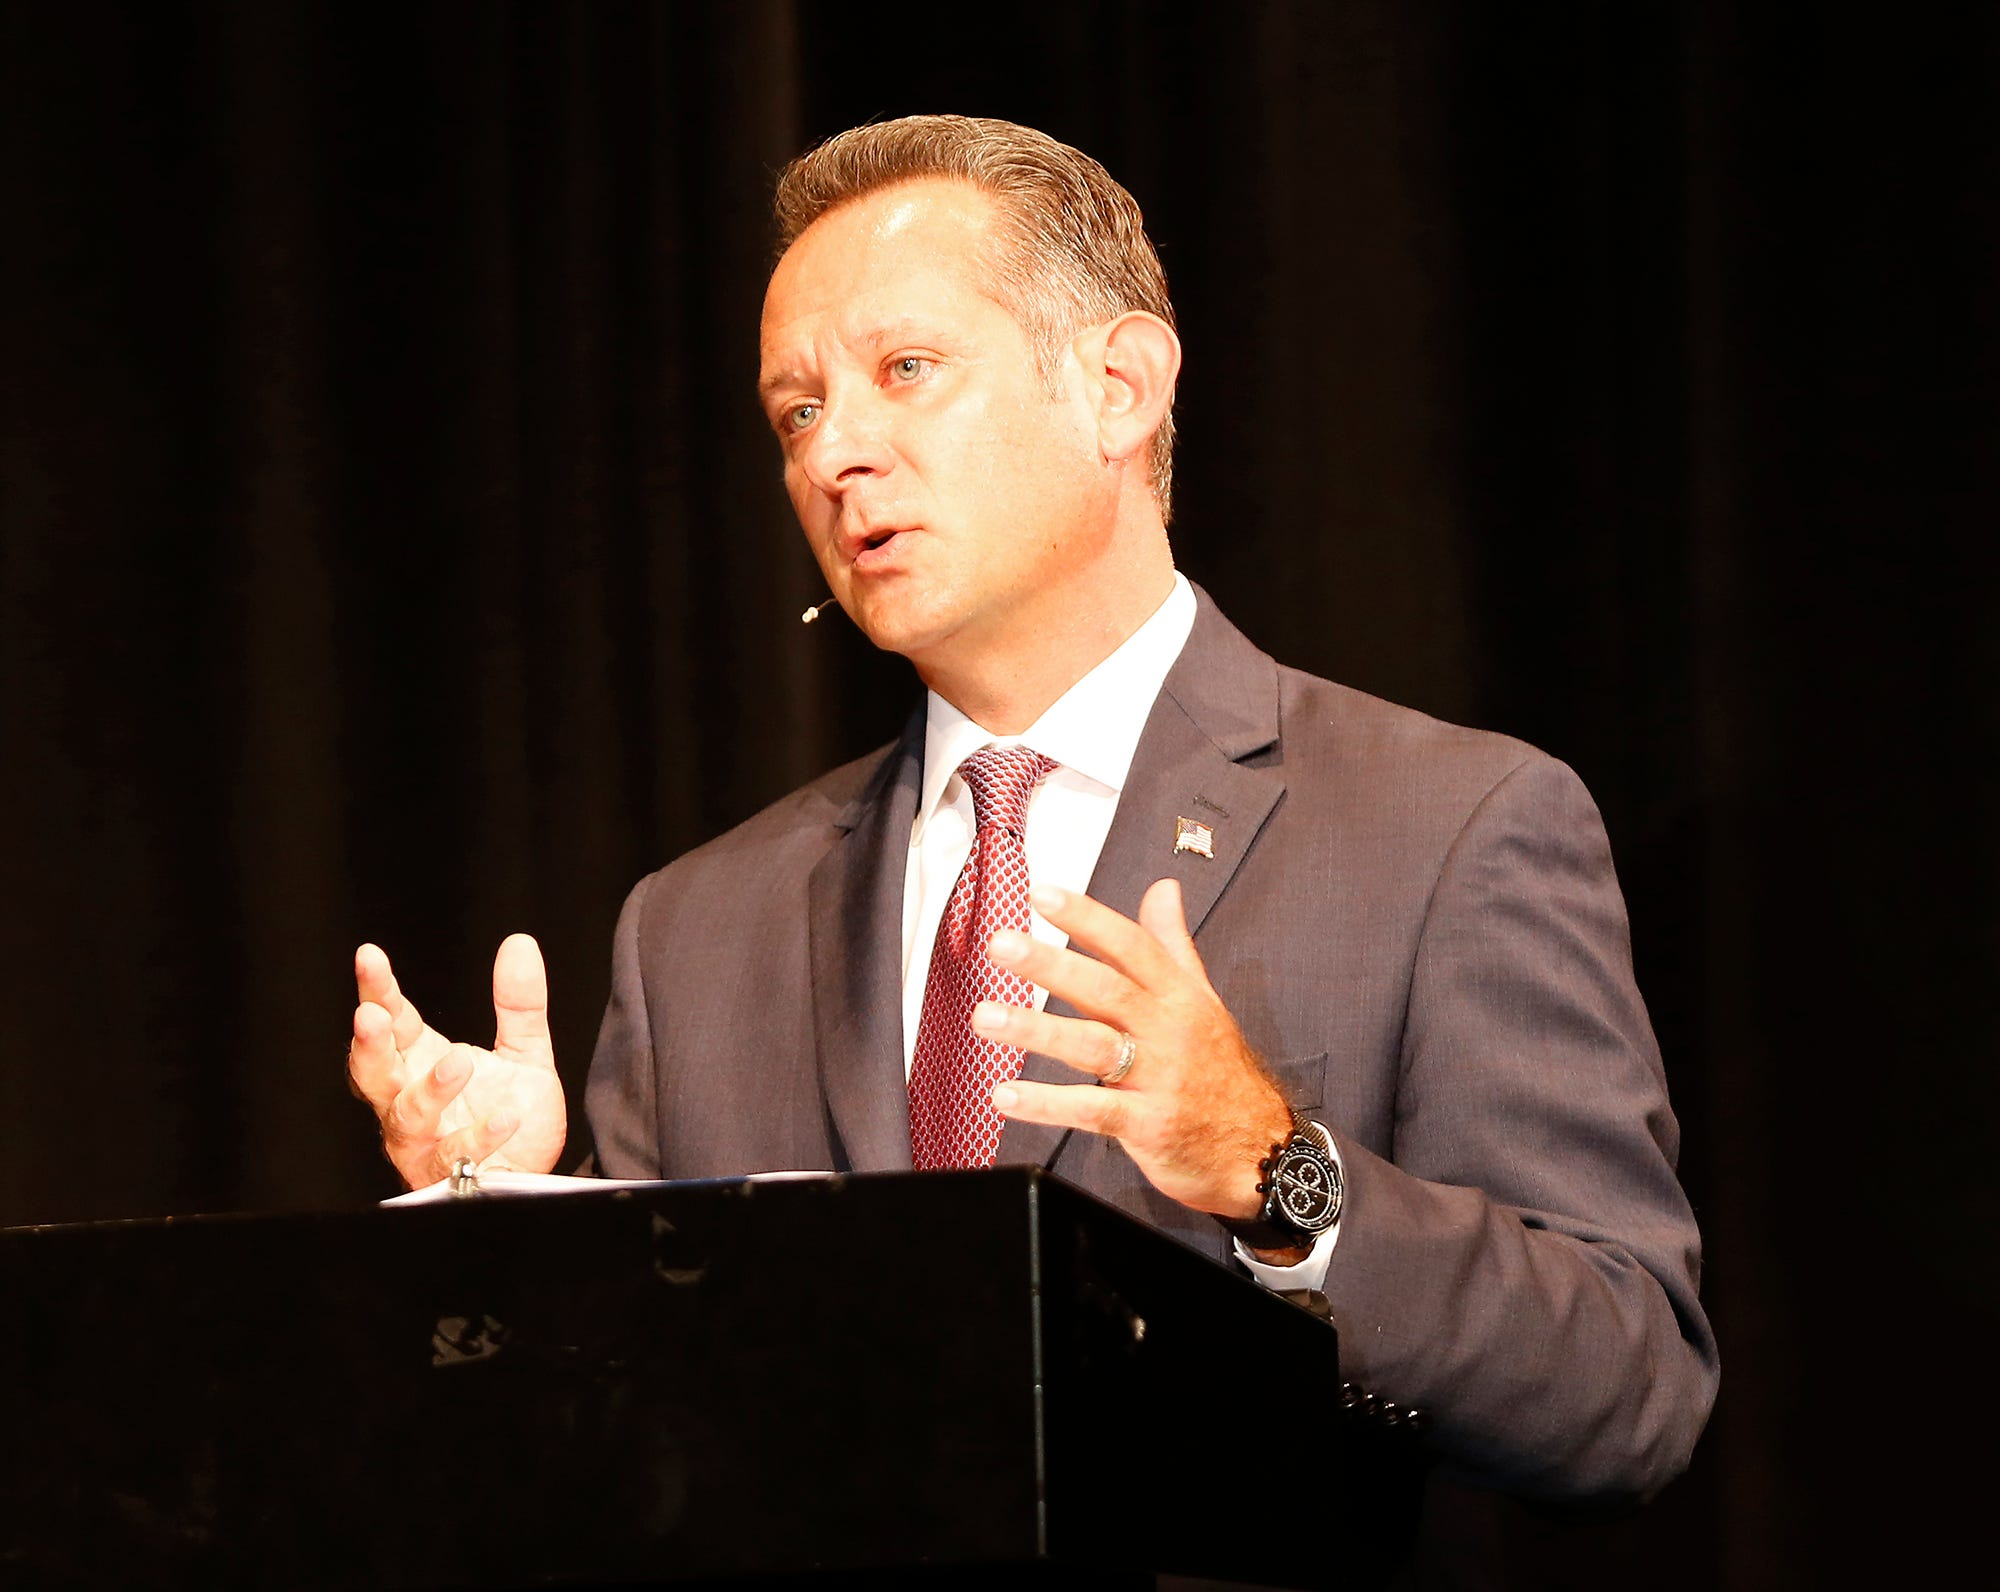 Republican candidate for Tippecanoe County Sheriff Jason Dombkowski answers a question during a debate with his Democrat opponent, Bob Goldsmith, Wednesday, September 19, 2018, at Harrison High School. The event was sponsored by Greater Lafayette League of Women Voters, WLFI, Wabash Area Lifetime Learning Association, and the AP government classes at Harrison and Lafayette Jefferson high schools.